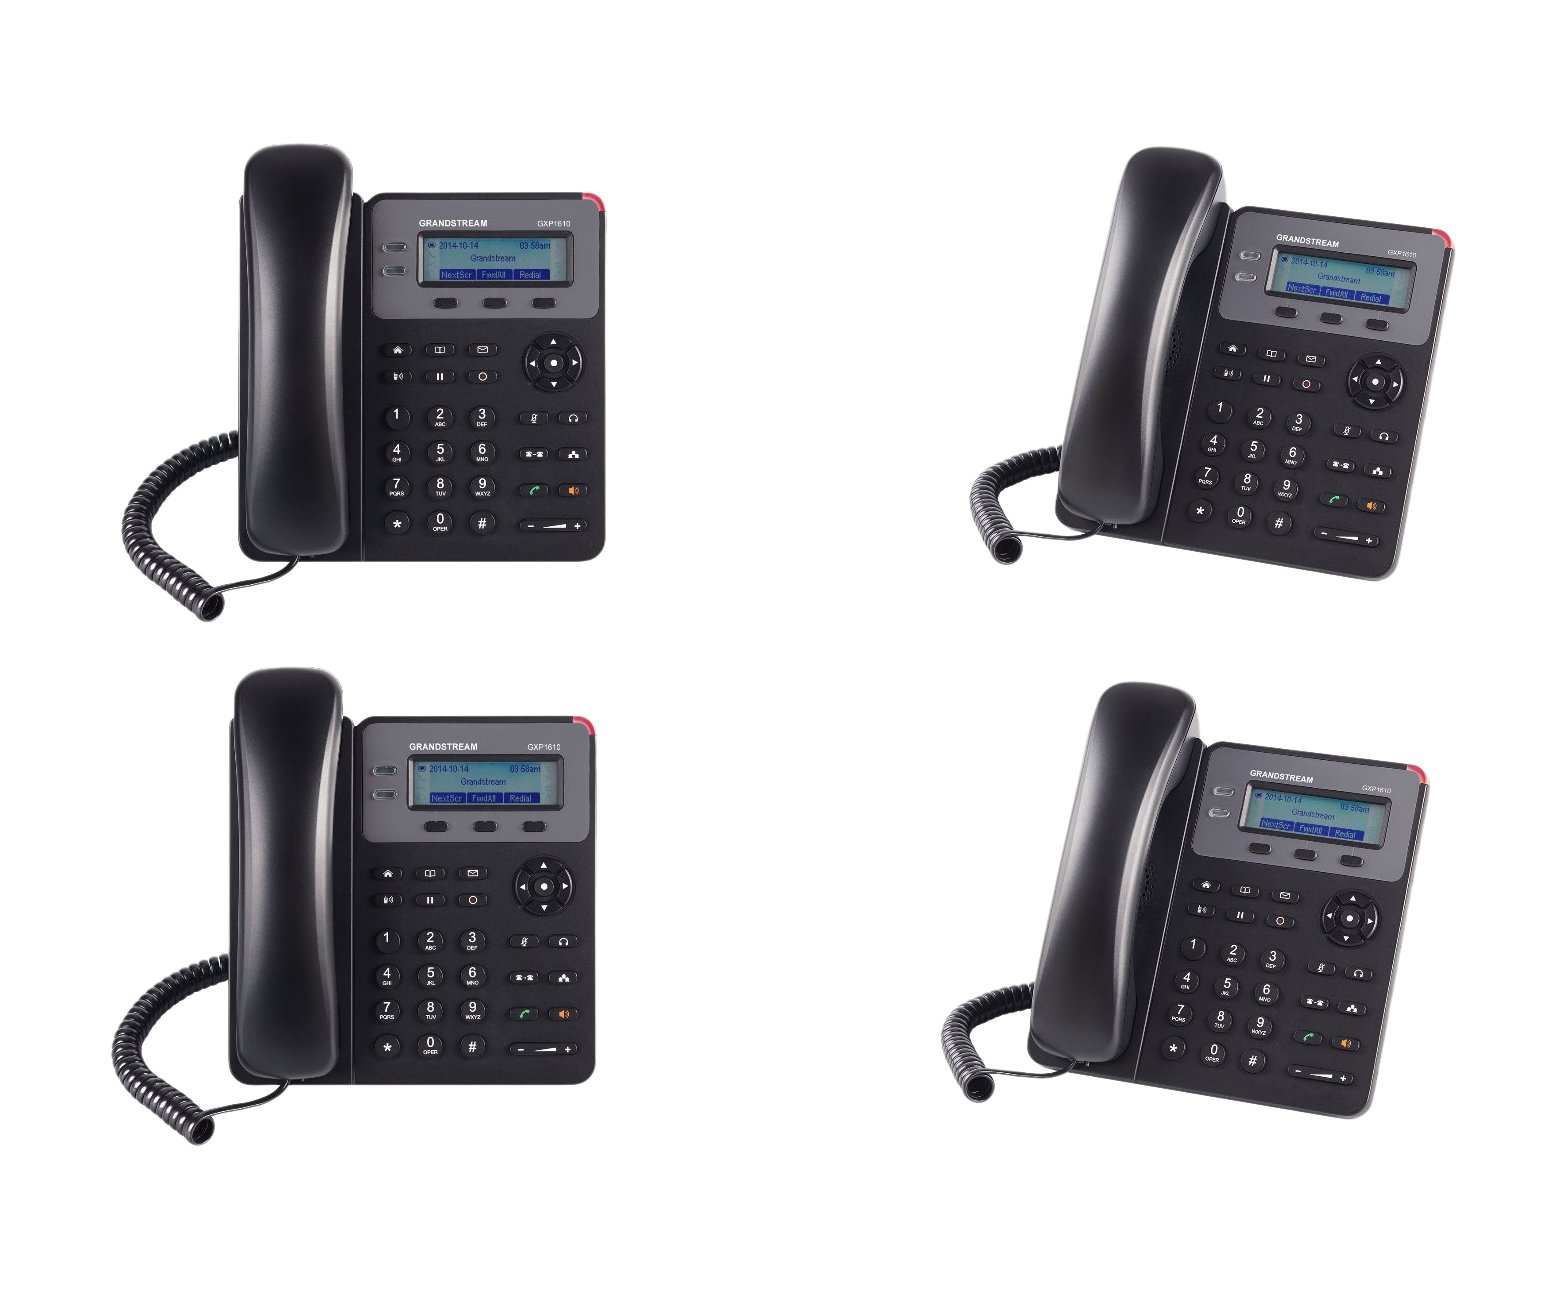 Grandstream GXP1610, SOHO IP Phone, 1 SIP Account, 3-Way Configuration, 4 Bundle